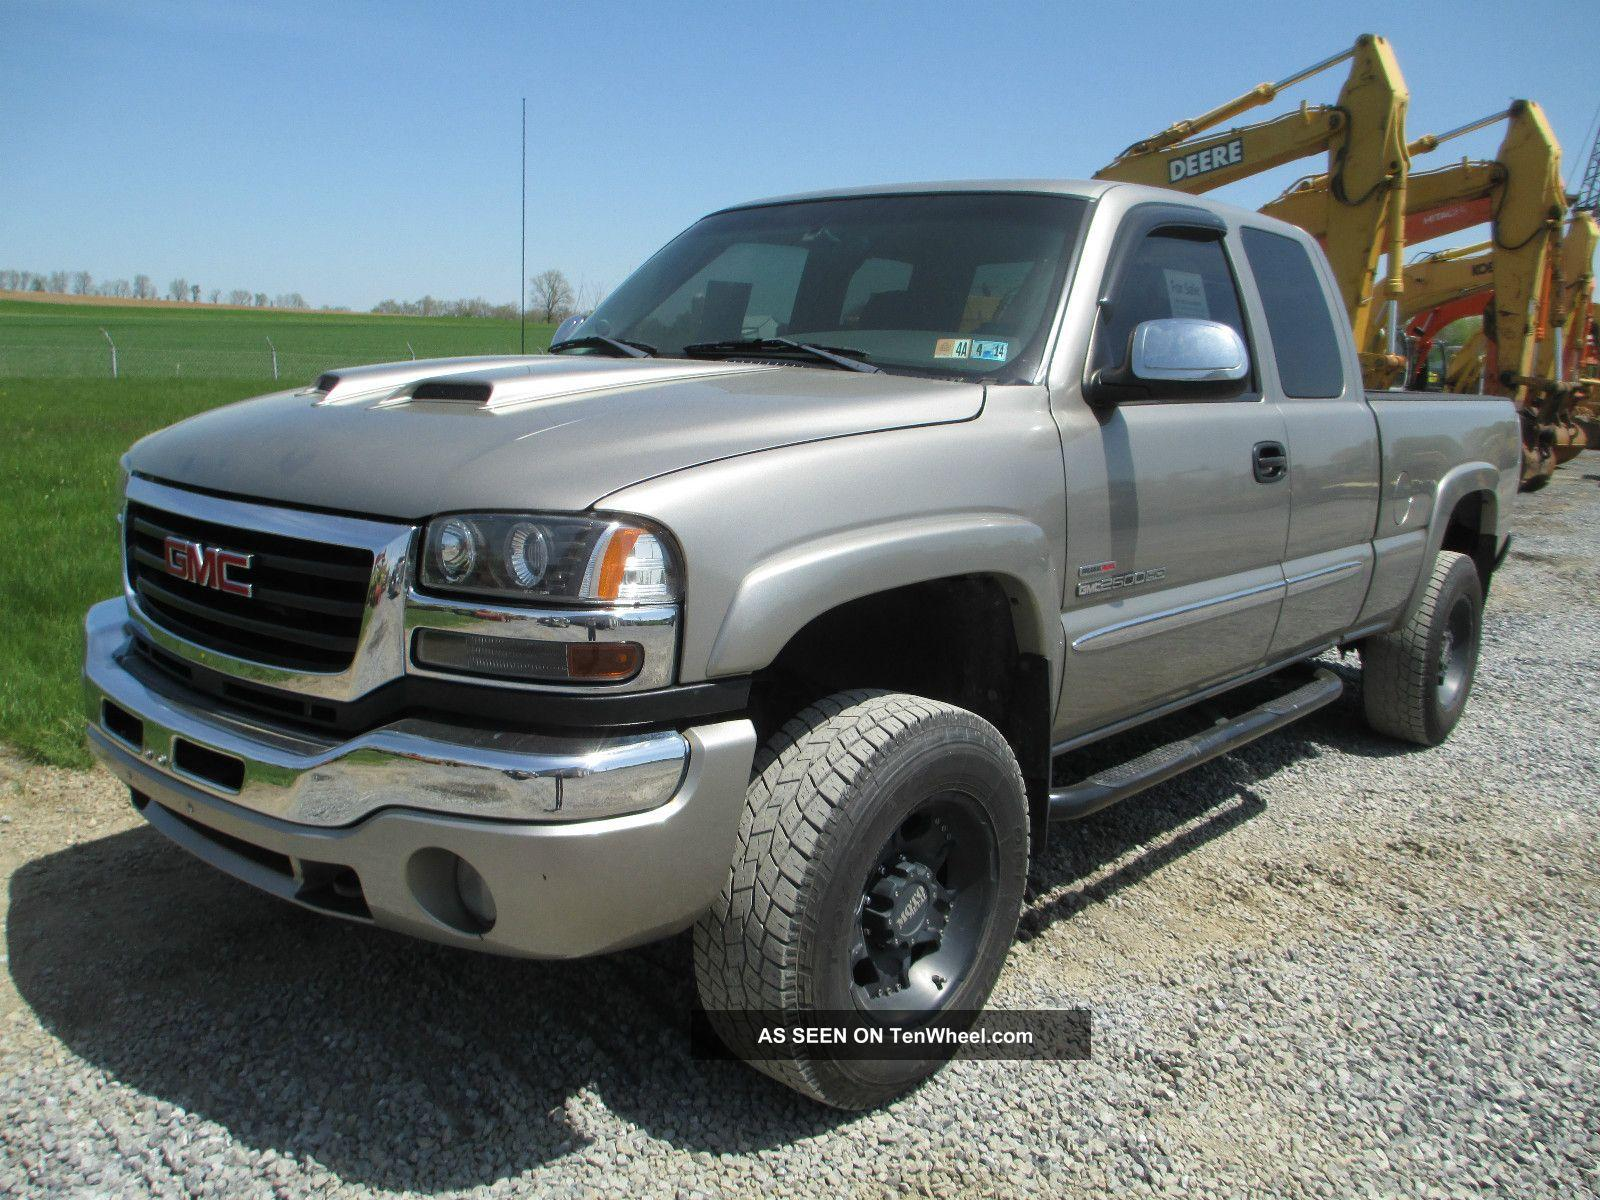 1993 gmc sierra 2500 information and photos zombiedrive. Black Bedroom Furniture Sets. Home Design Ideas